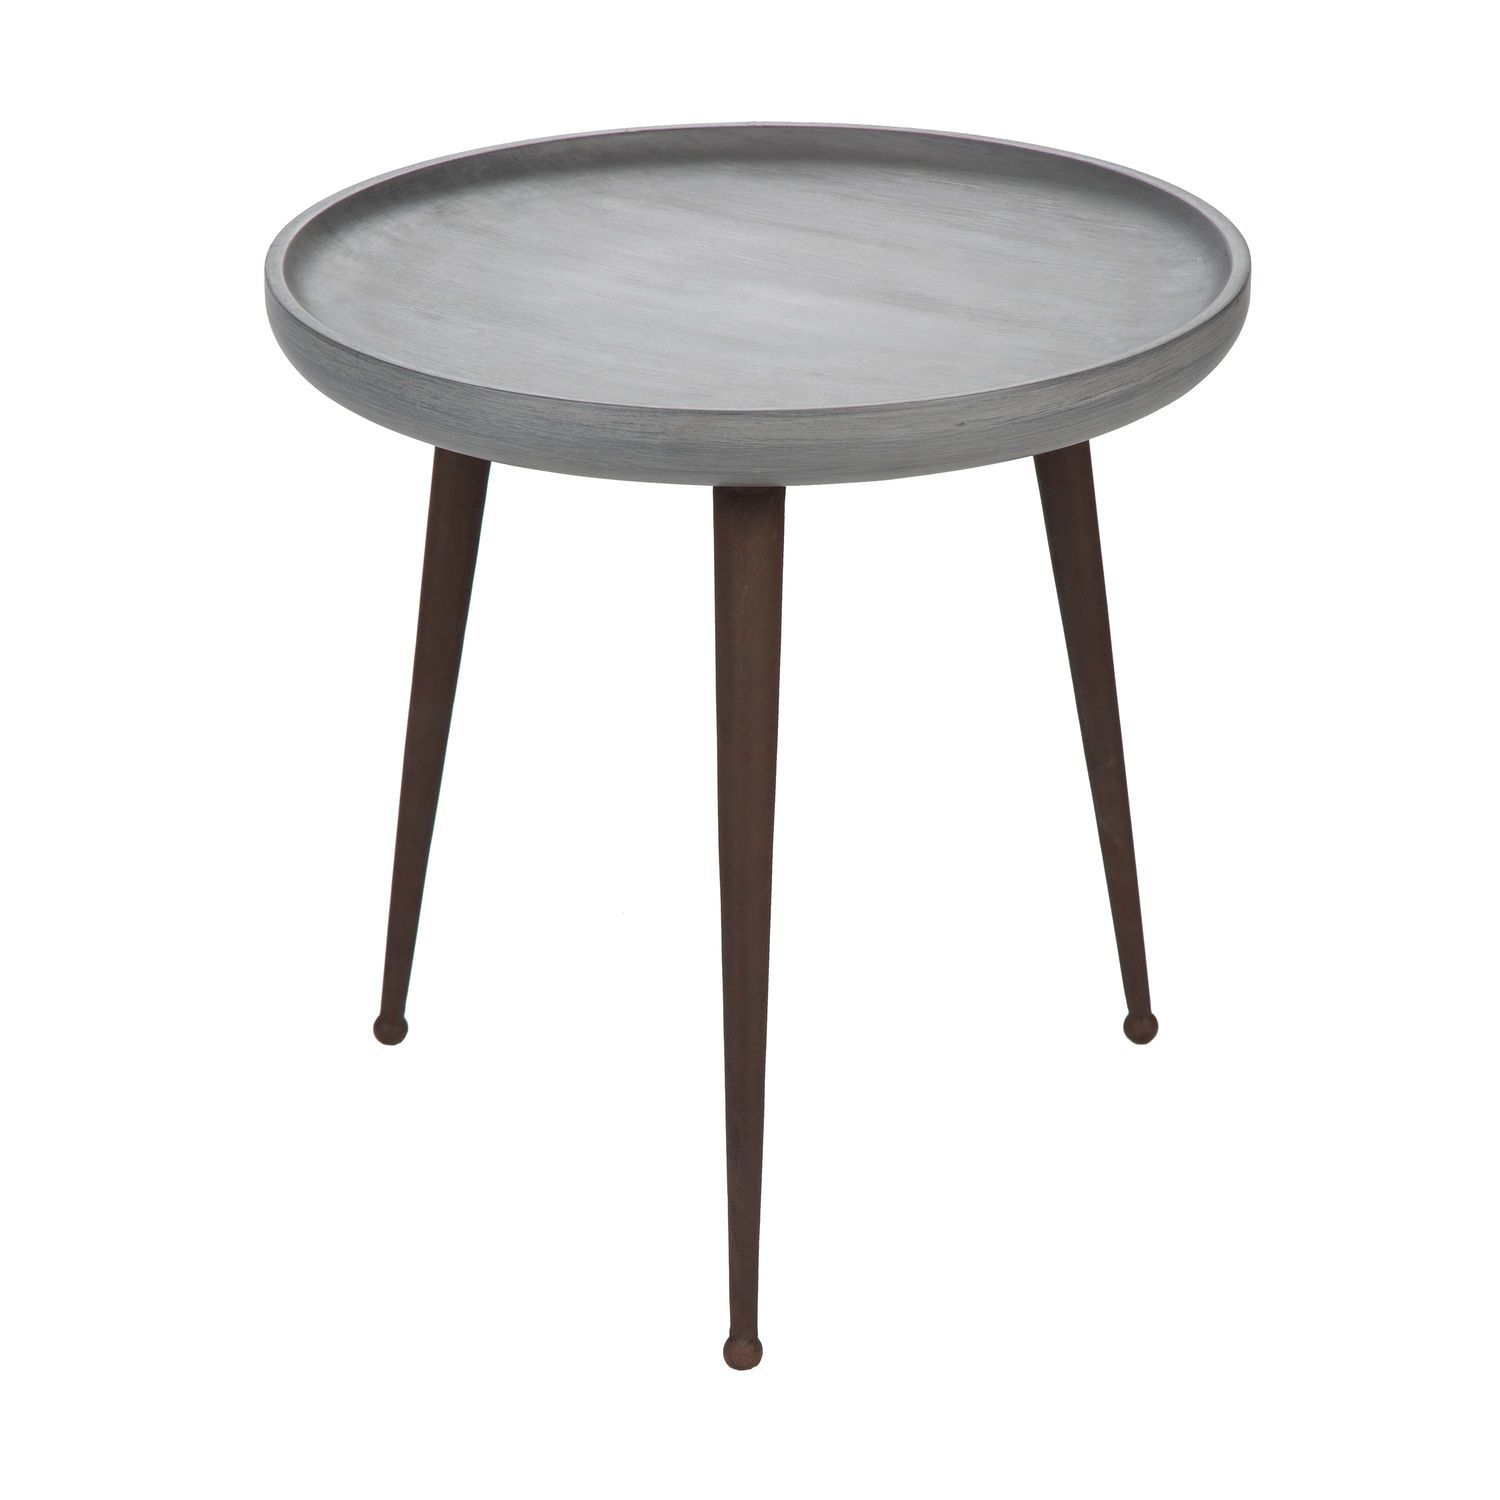 Table Metal Blanc Contemporary Side Table Wooden Metal Round Sam Blanc D